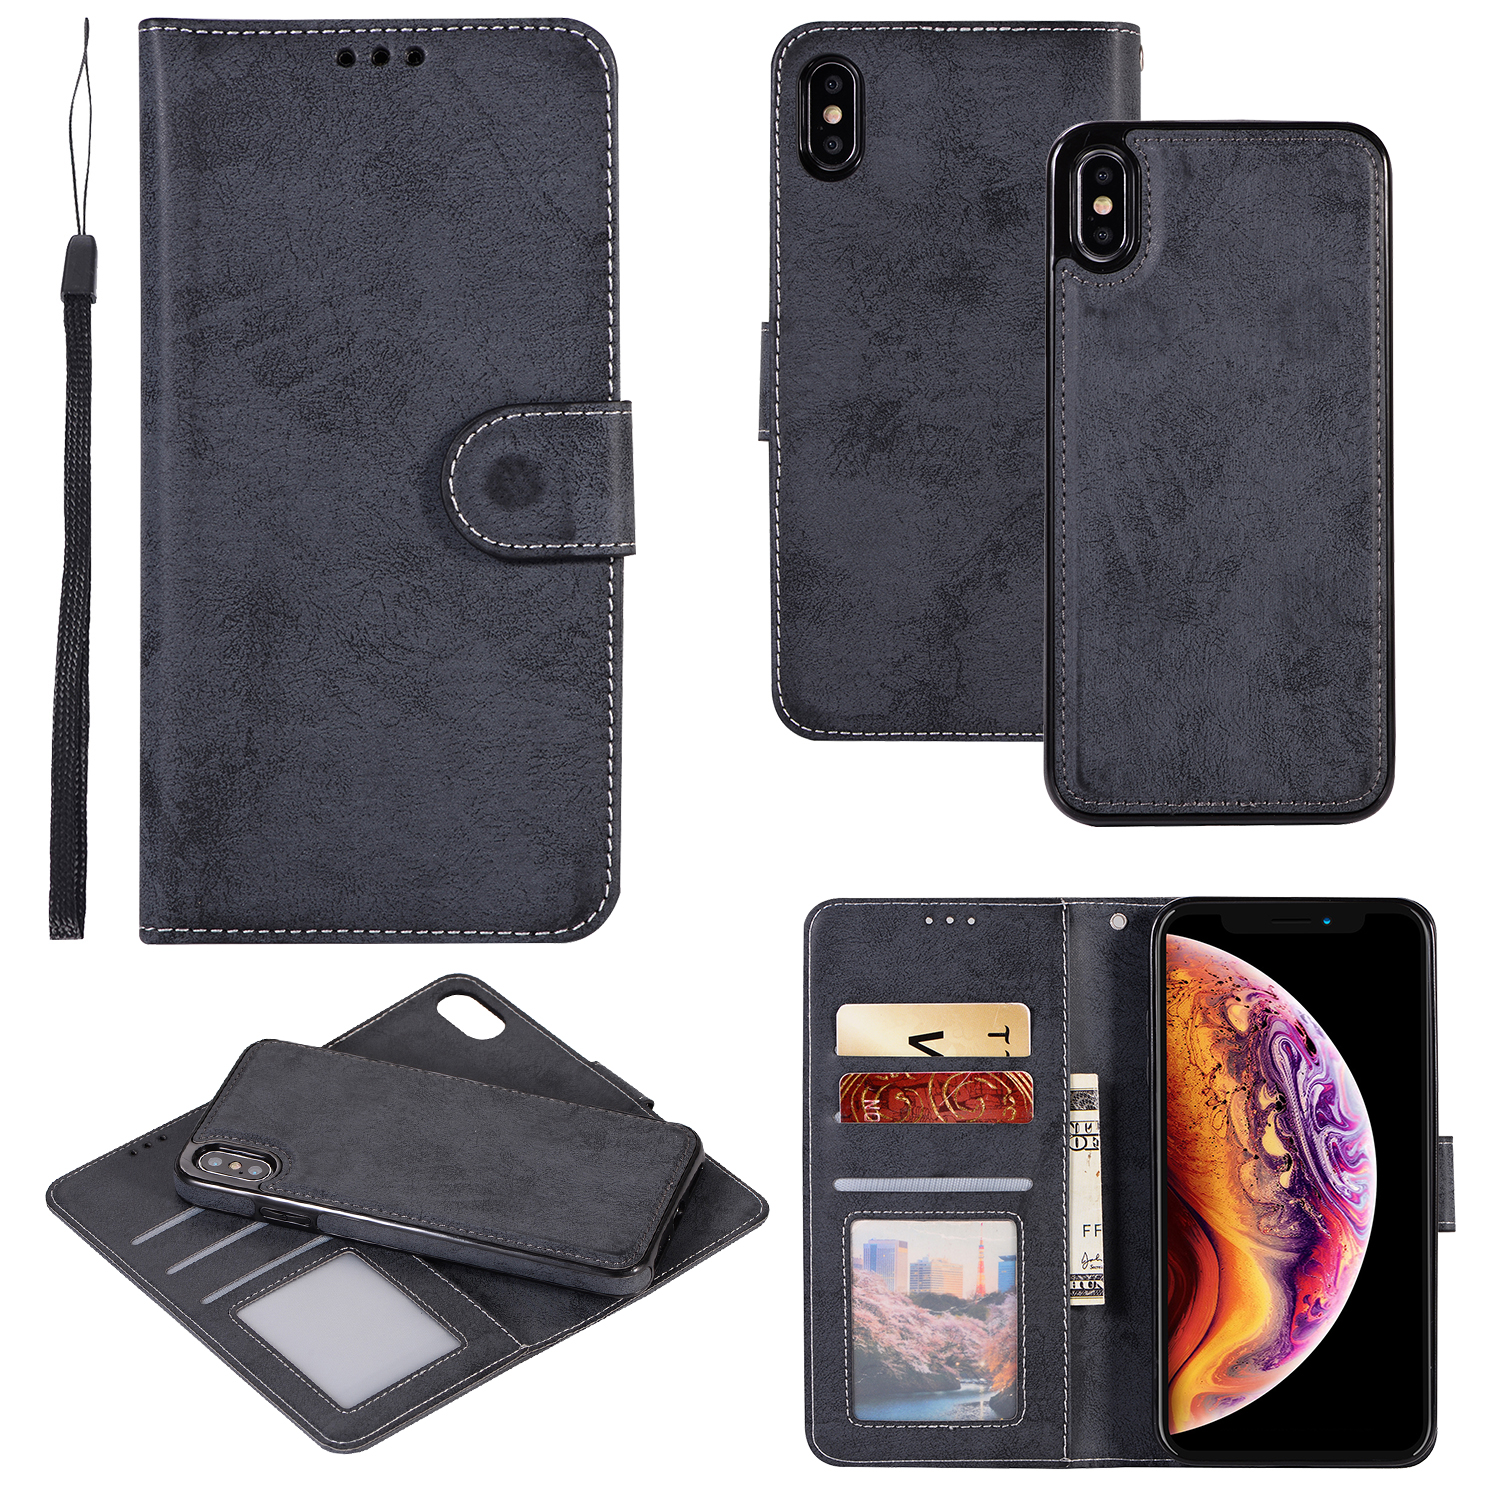 XR Shell For iPhone XS Max Case Retro Leather Wallet 2 in 1 Magnetic Detachable Flip Case For iPhone 5 SE 6 8 7 Plus Cover CoqueXR Shell For iPhone XS Max Case Retro Leather Wallet 2 in 1 Magnetic Detachable Flip Case For iPhone 5 SE 6 8 7 Plus Cover Coque